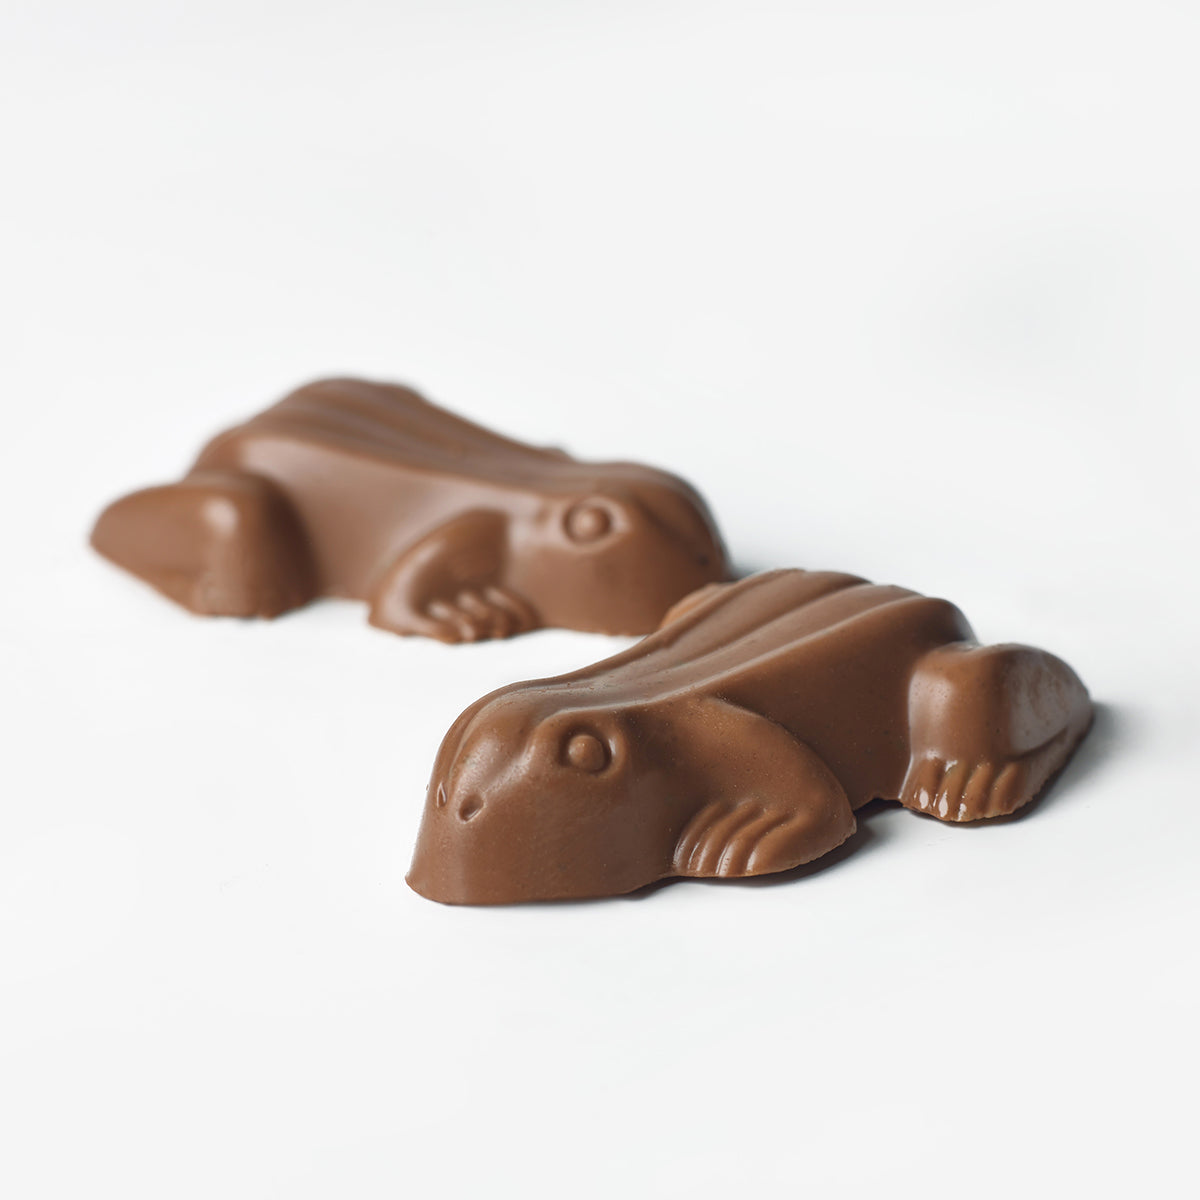 Choc Frogs | The Confectionery House | Australia